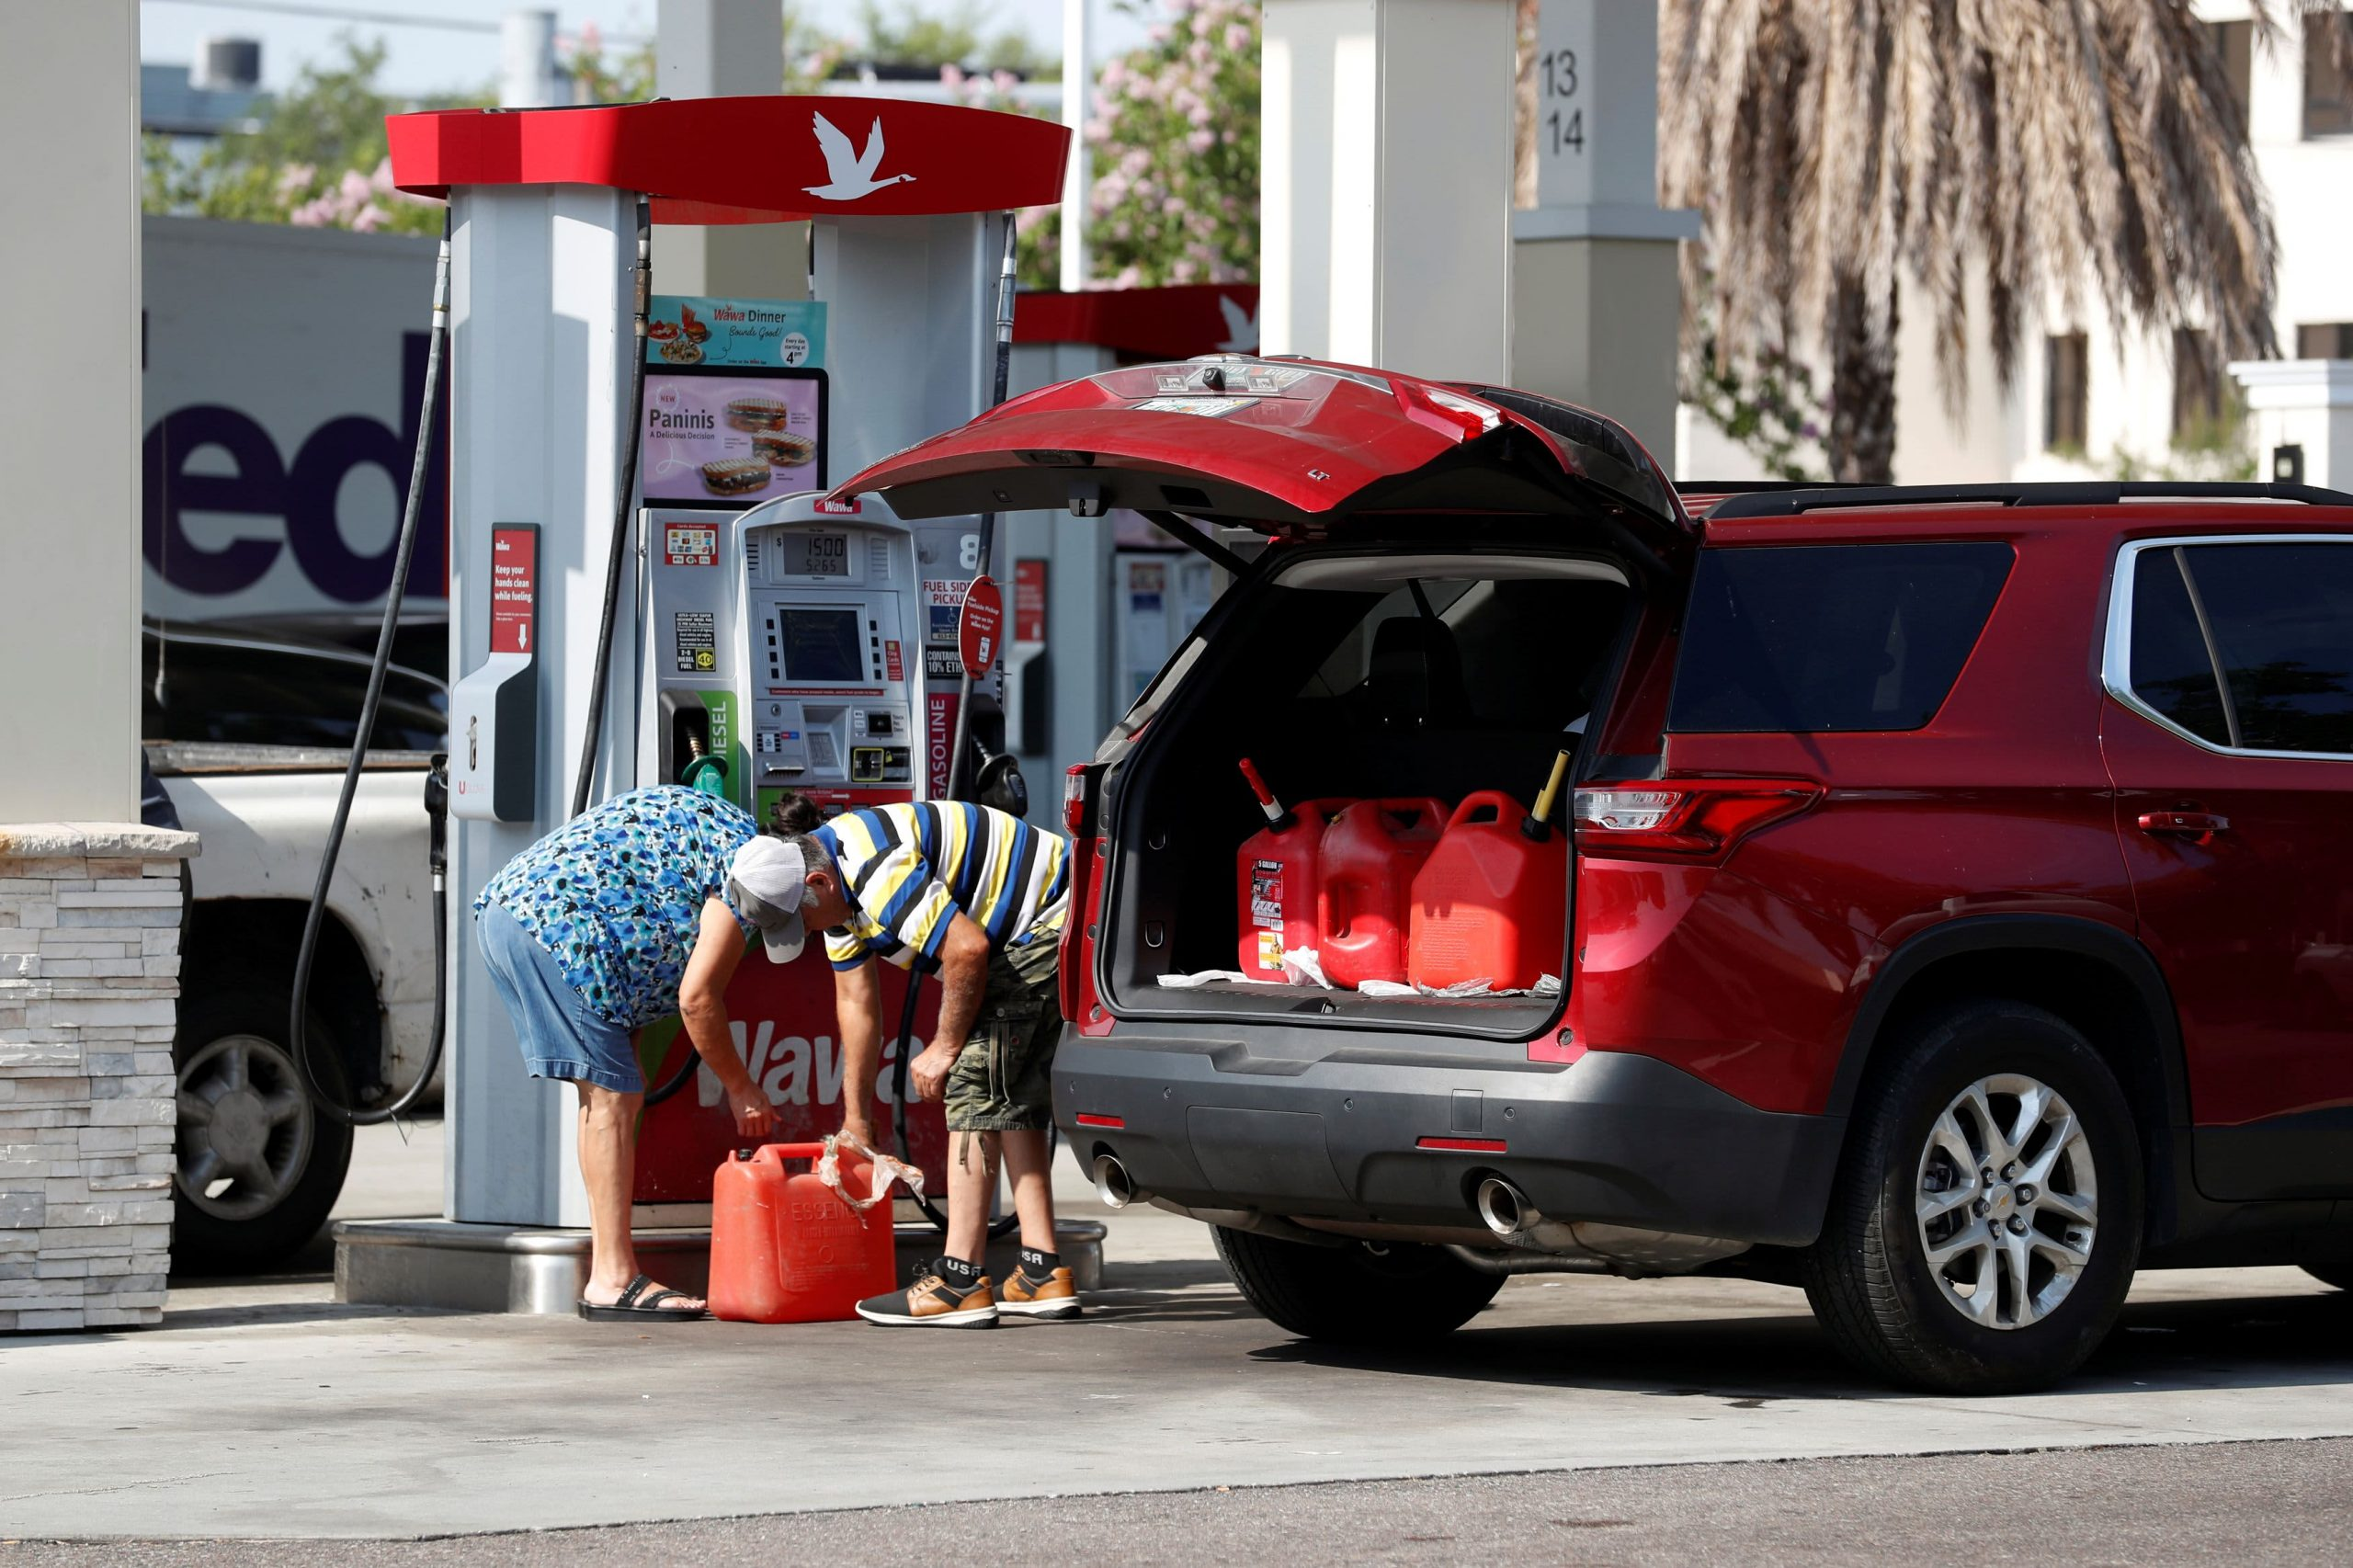 Gas outages hitting Southeast are getting worse amid panic buying